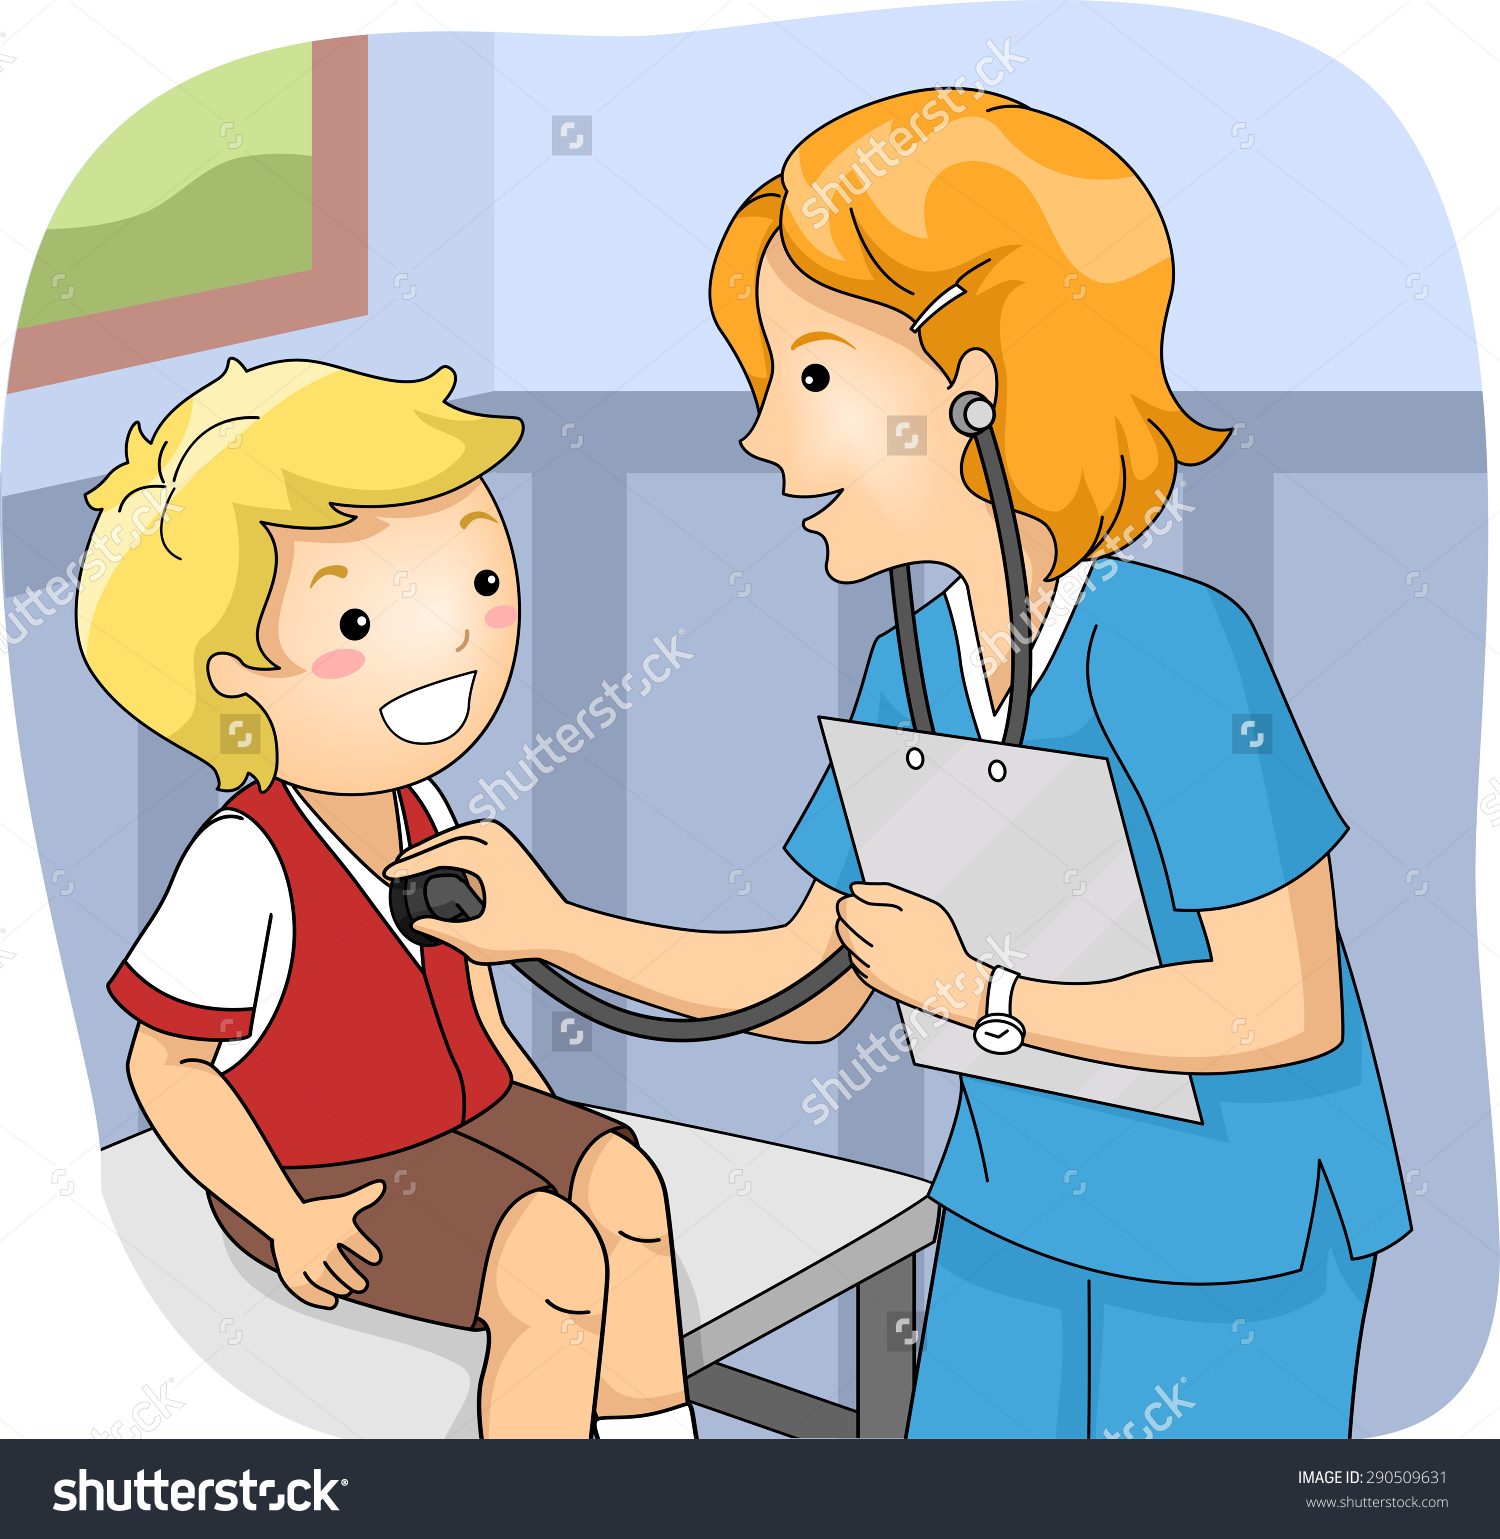 Medical check up clipart.